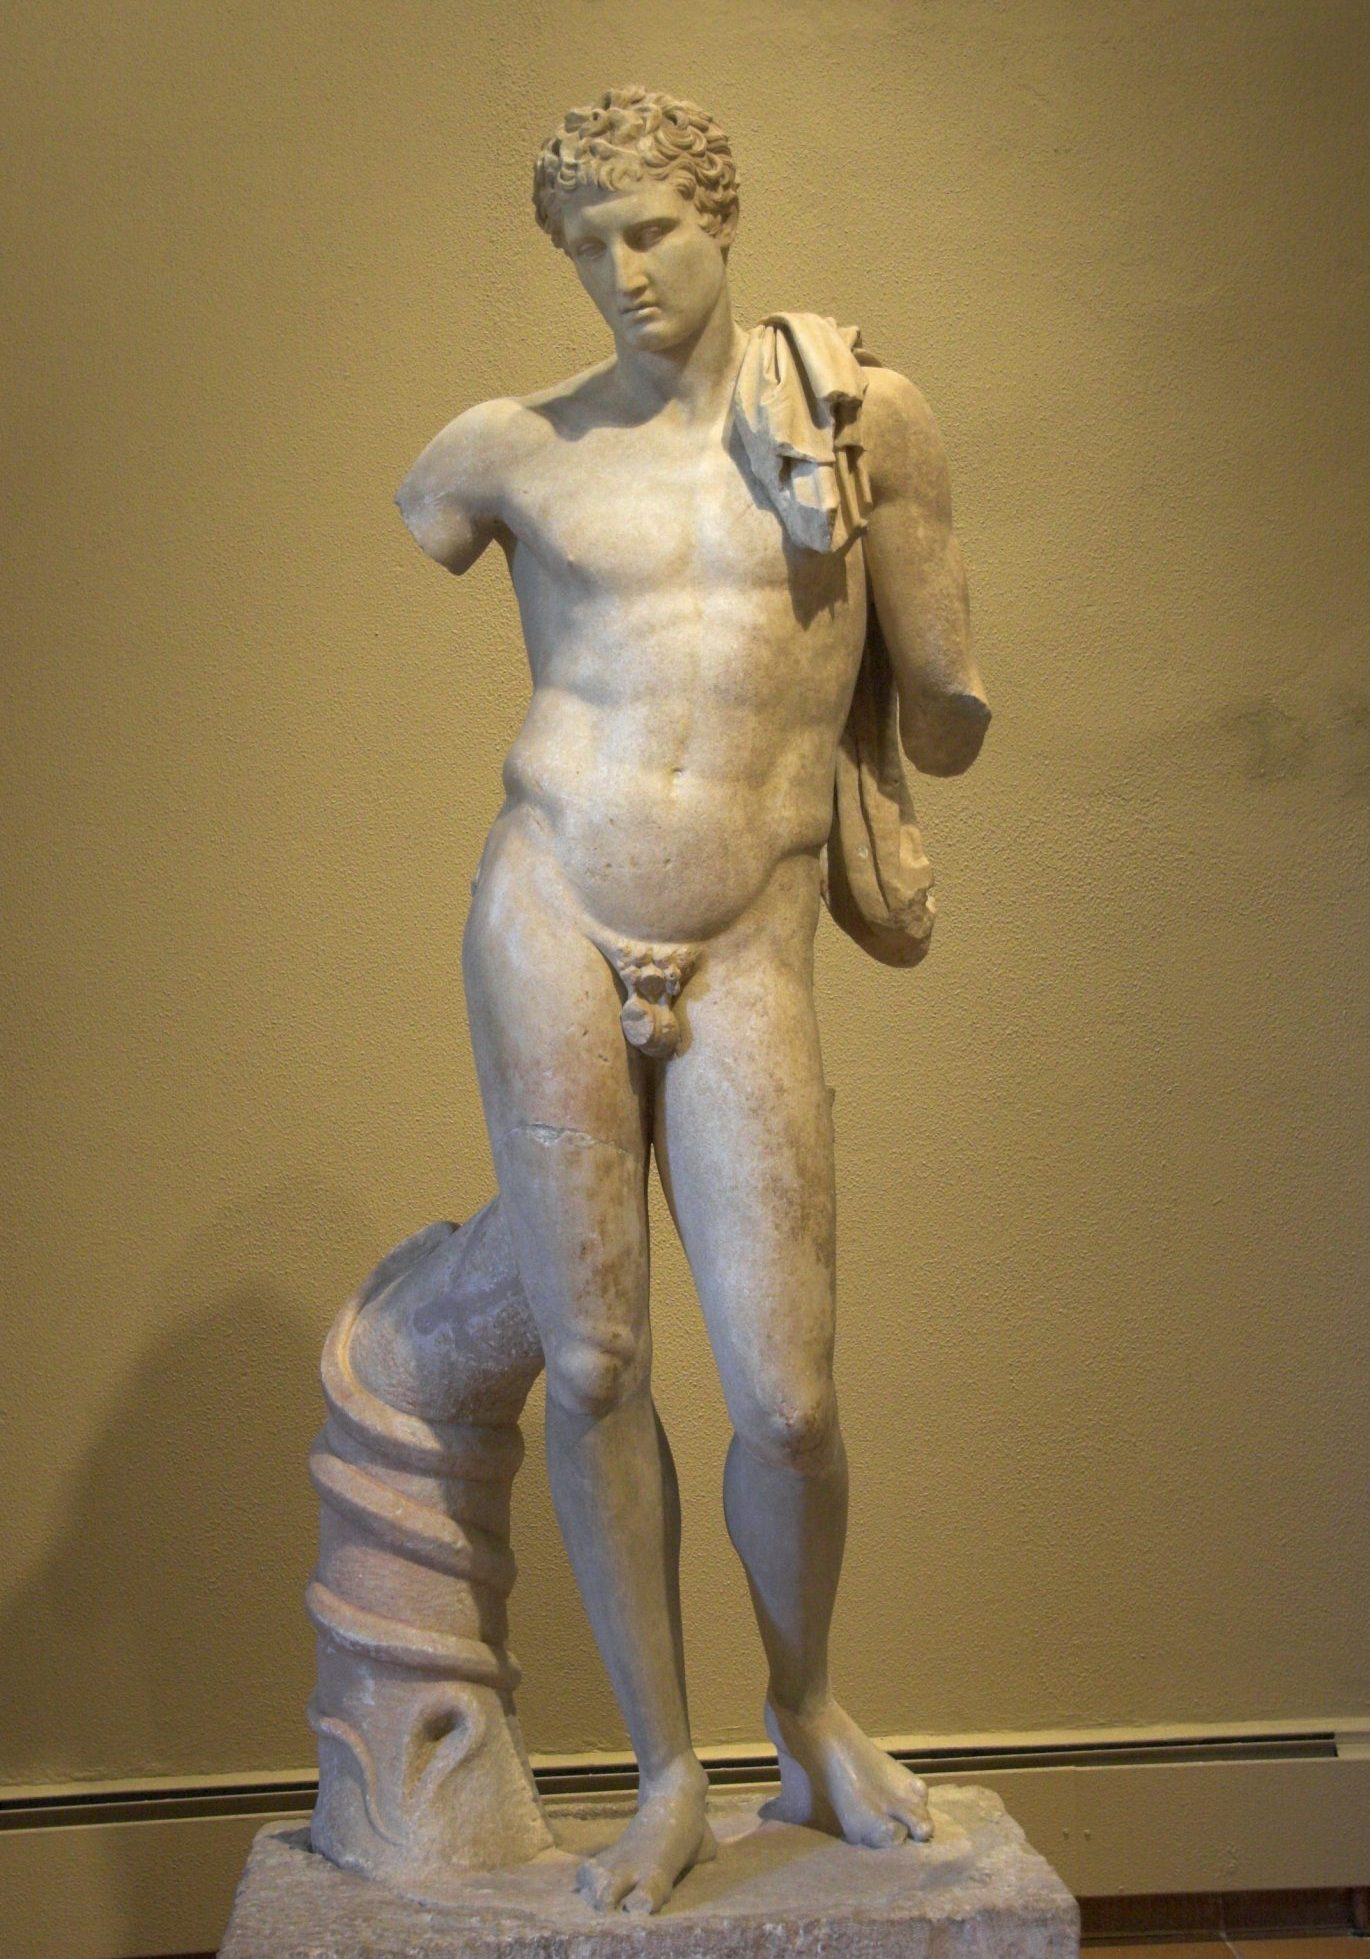 <p><i>The Hermes of Andros.</i></p><p>Roman copy after original</p><p>of c. 350 BCE. Marble.</p><p>Andros Museum, Andros.</p>